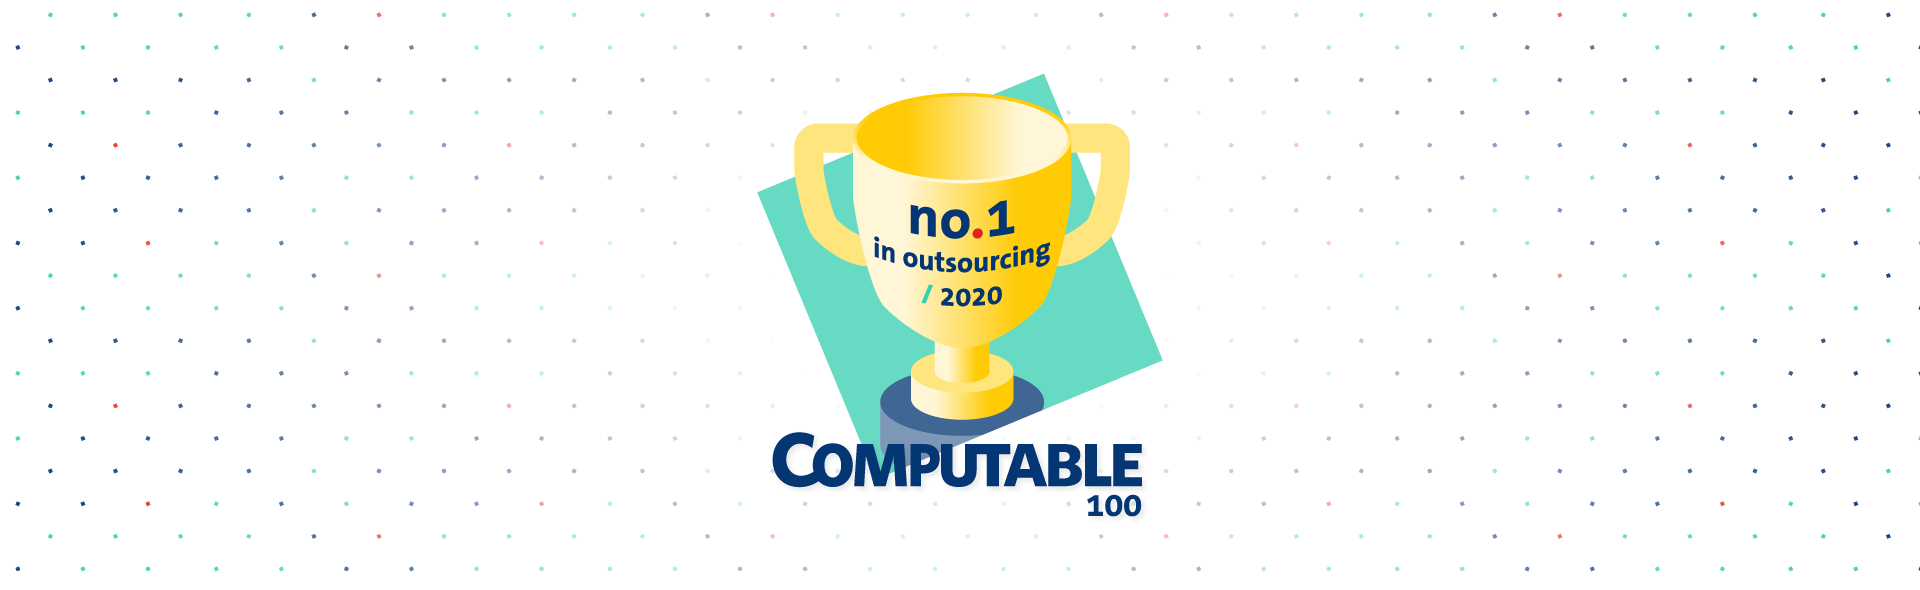 OGD nummer 1 in Outsourcing Computable 100